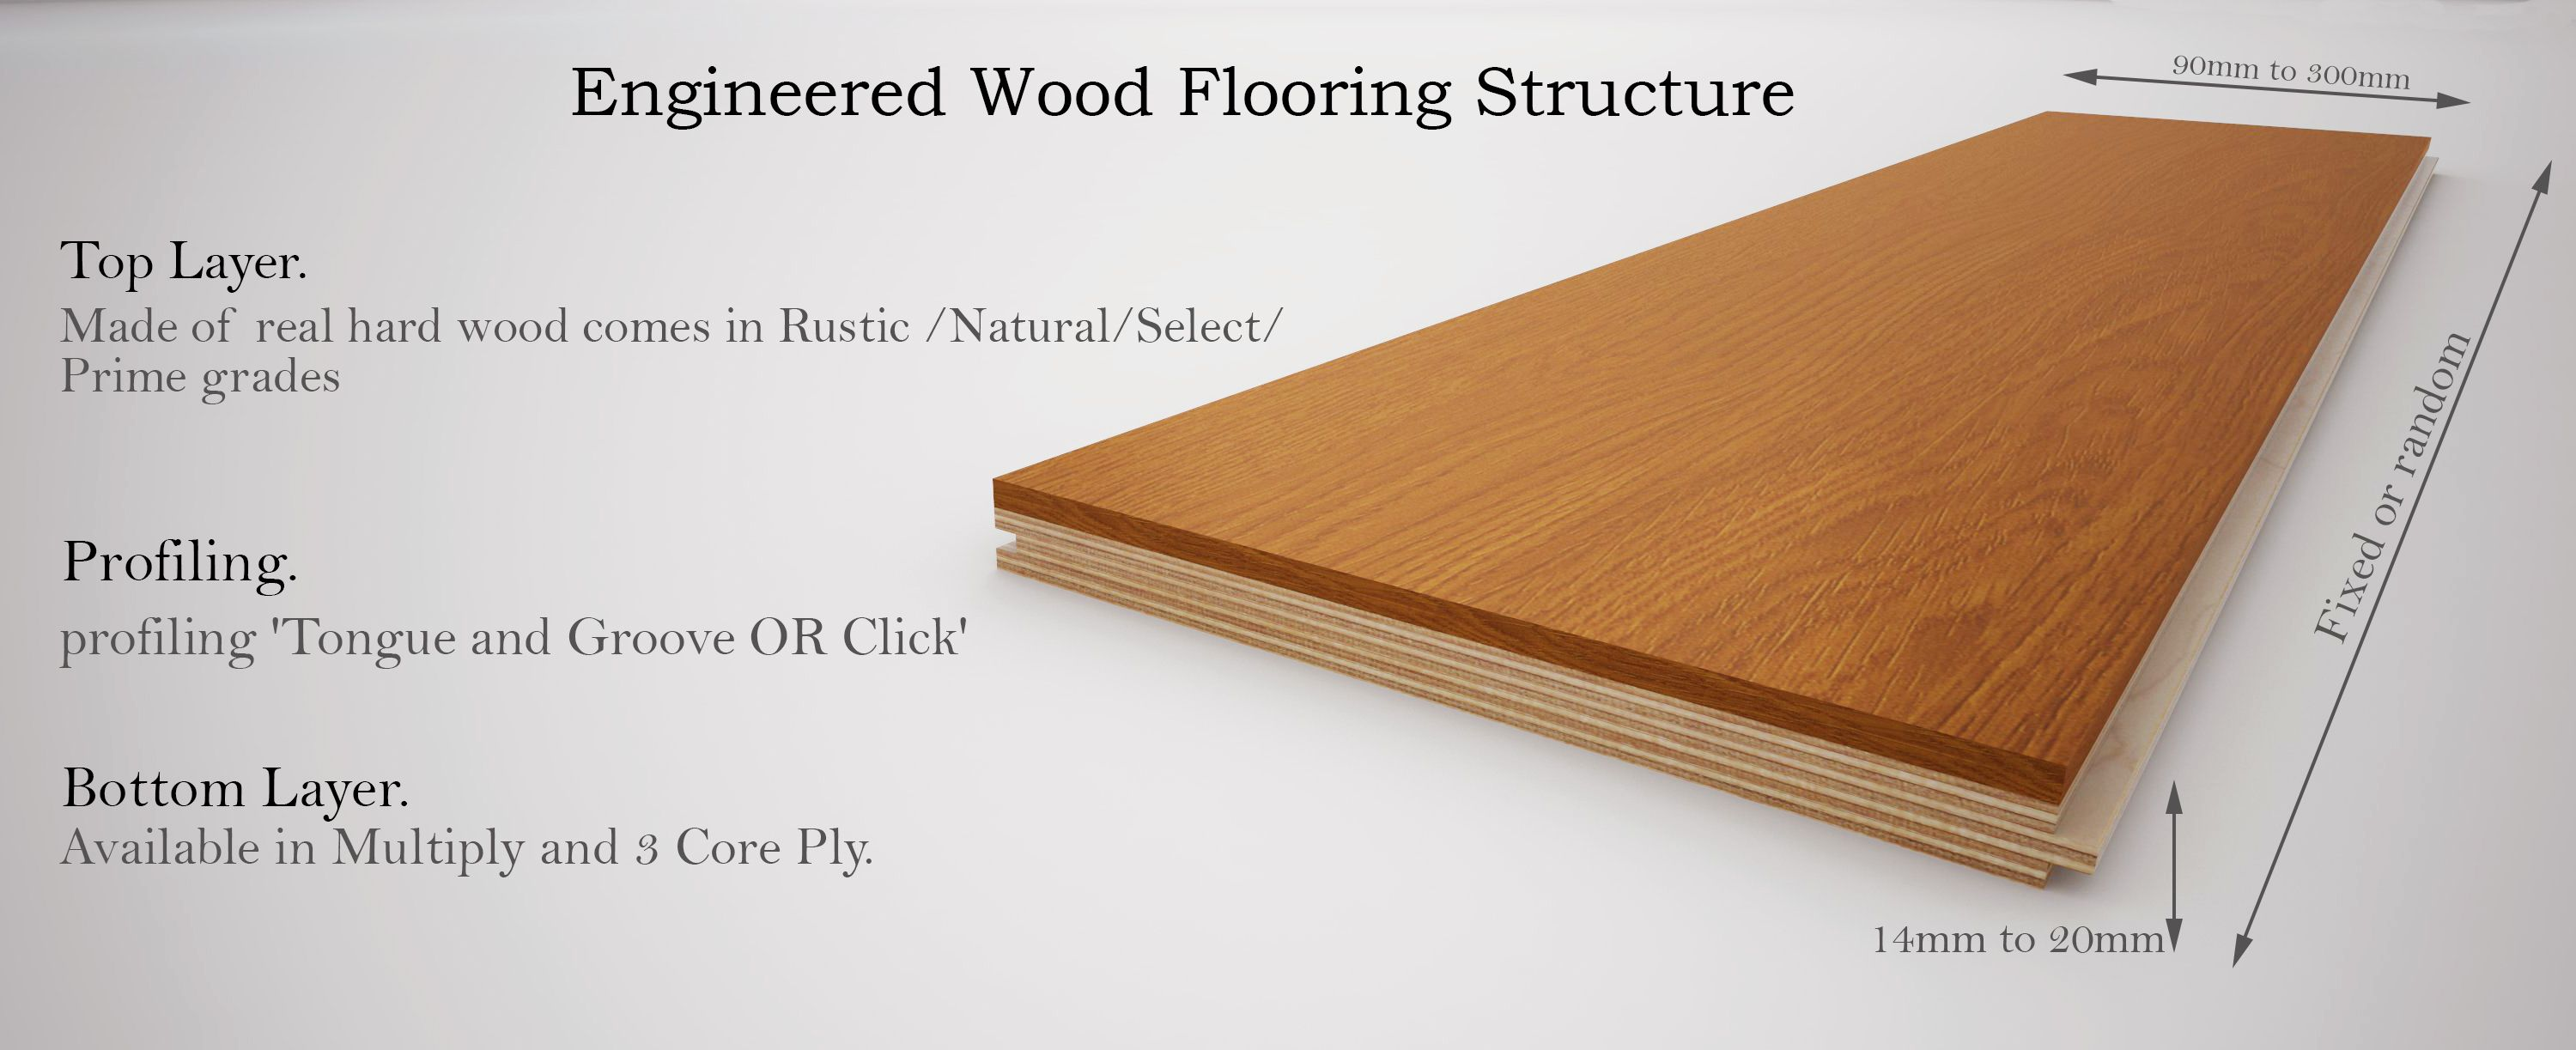 Engineered Wood Flooring Thickness And Width Engineered Wood Floors Engineered Wood Flooring Herringbone Flooring